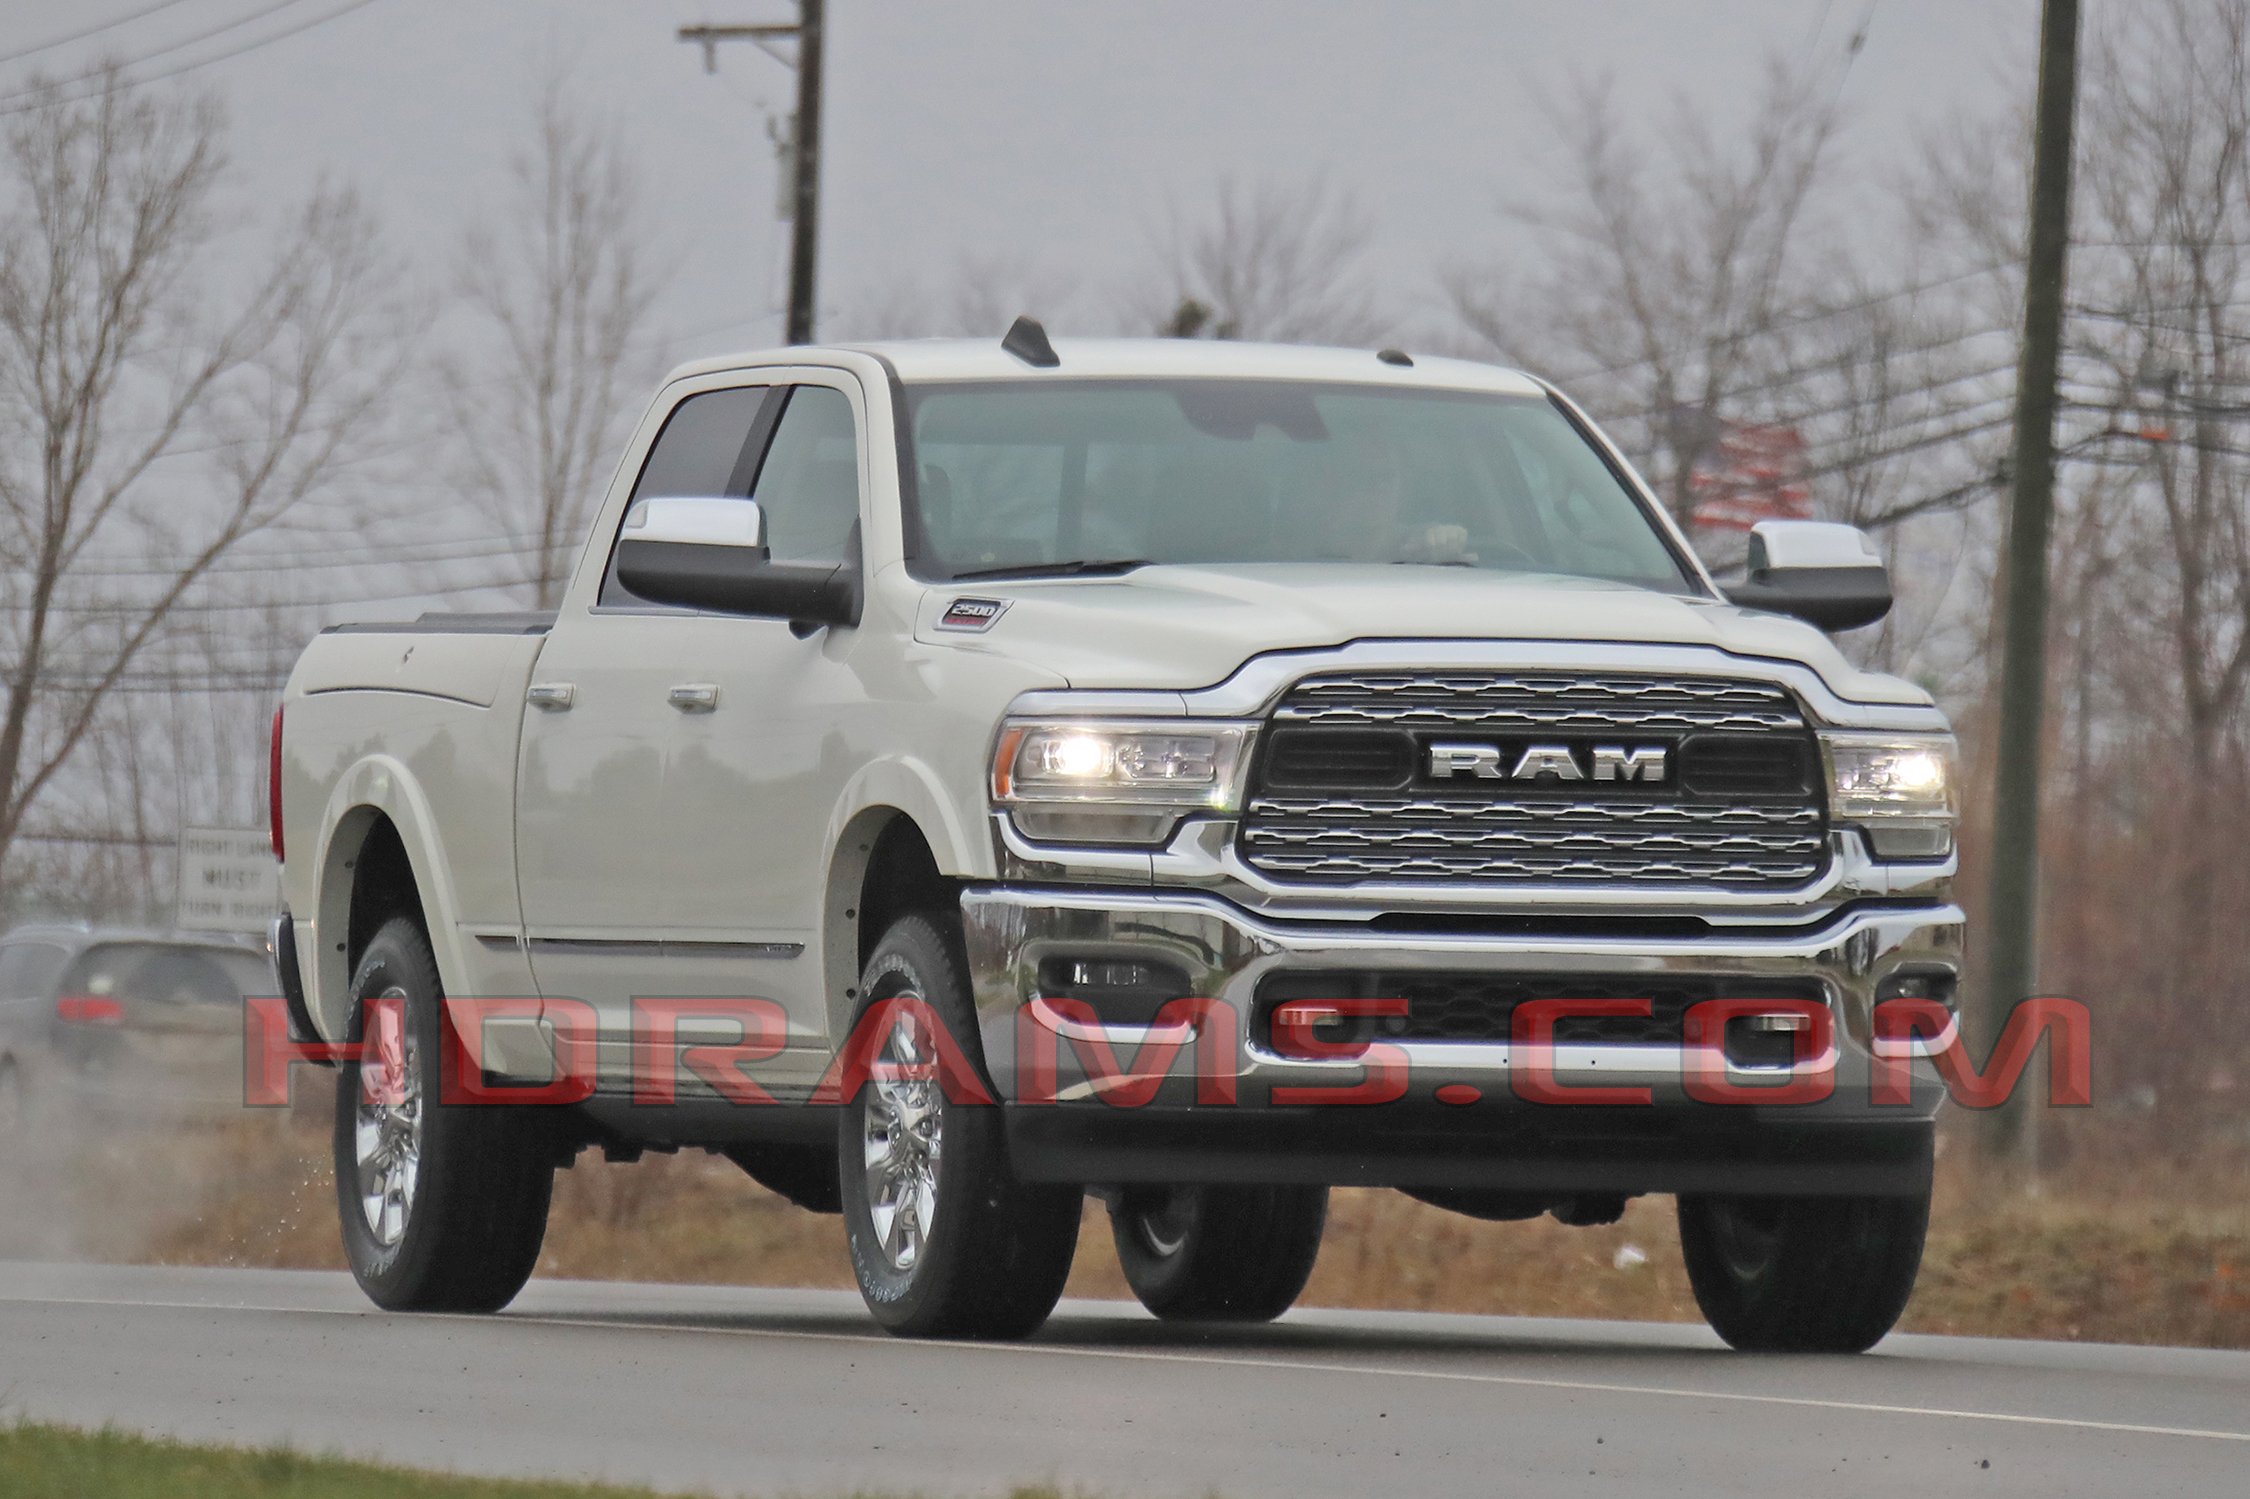 updated next generation cummins to get cgi block 5th gen rams 6th Gen Cummins Lifted 2019 ram 2500 limited brian williams spiedbilde